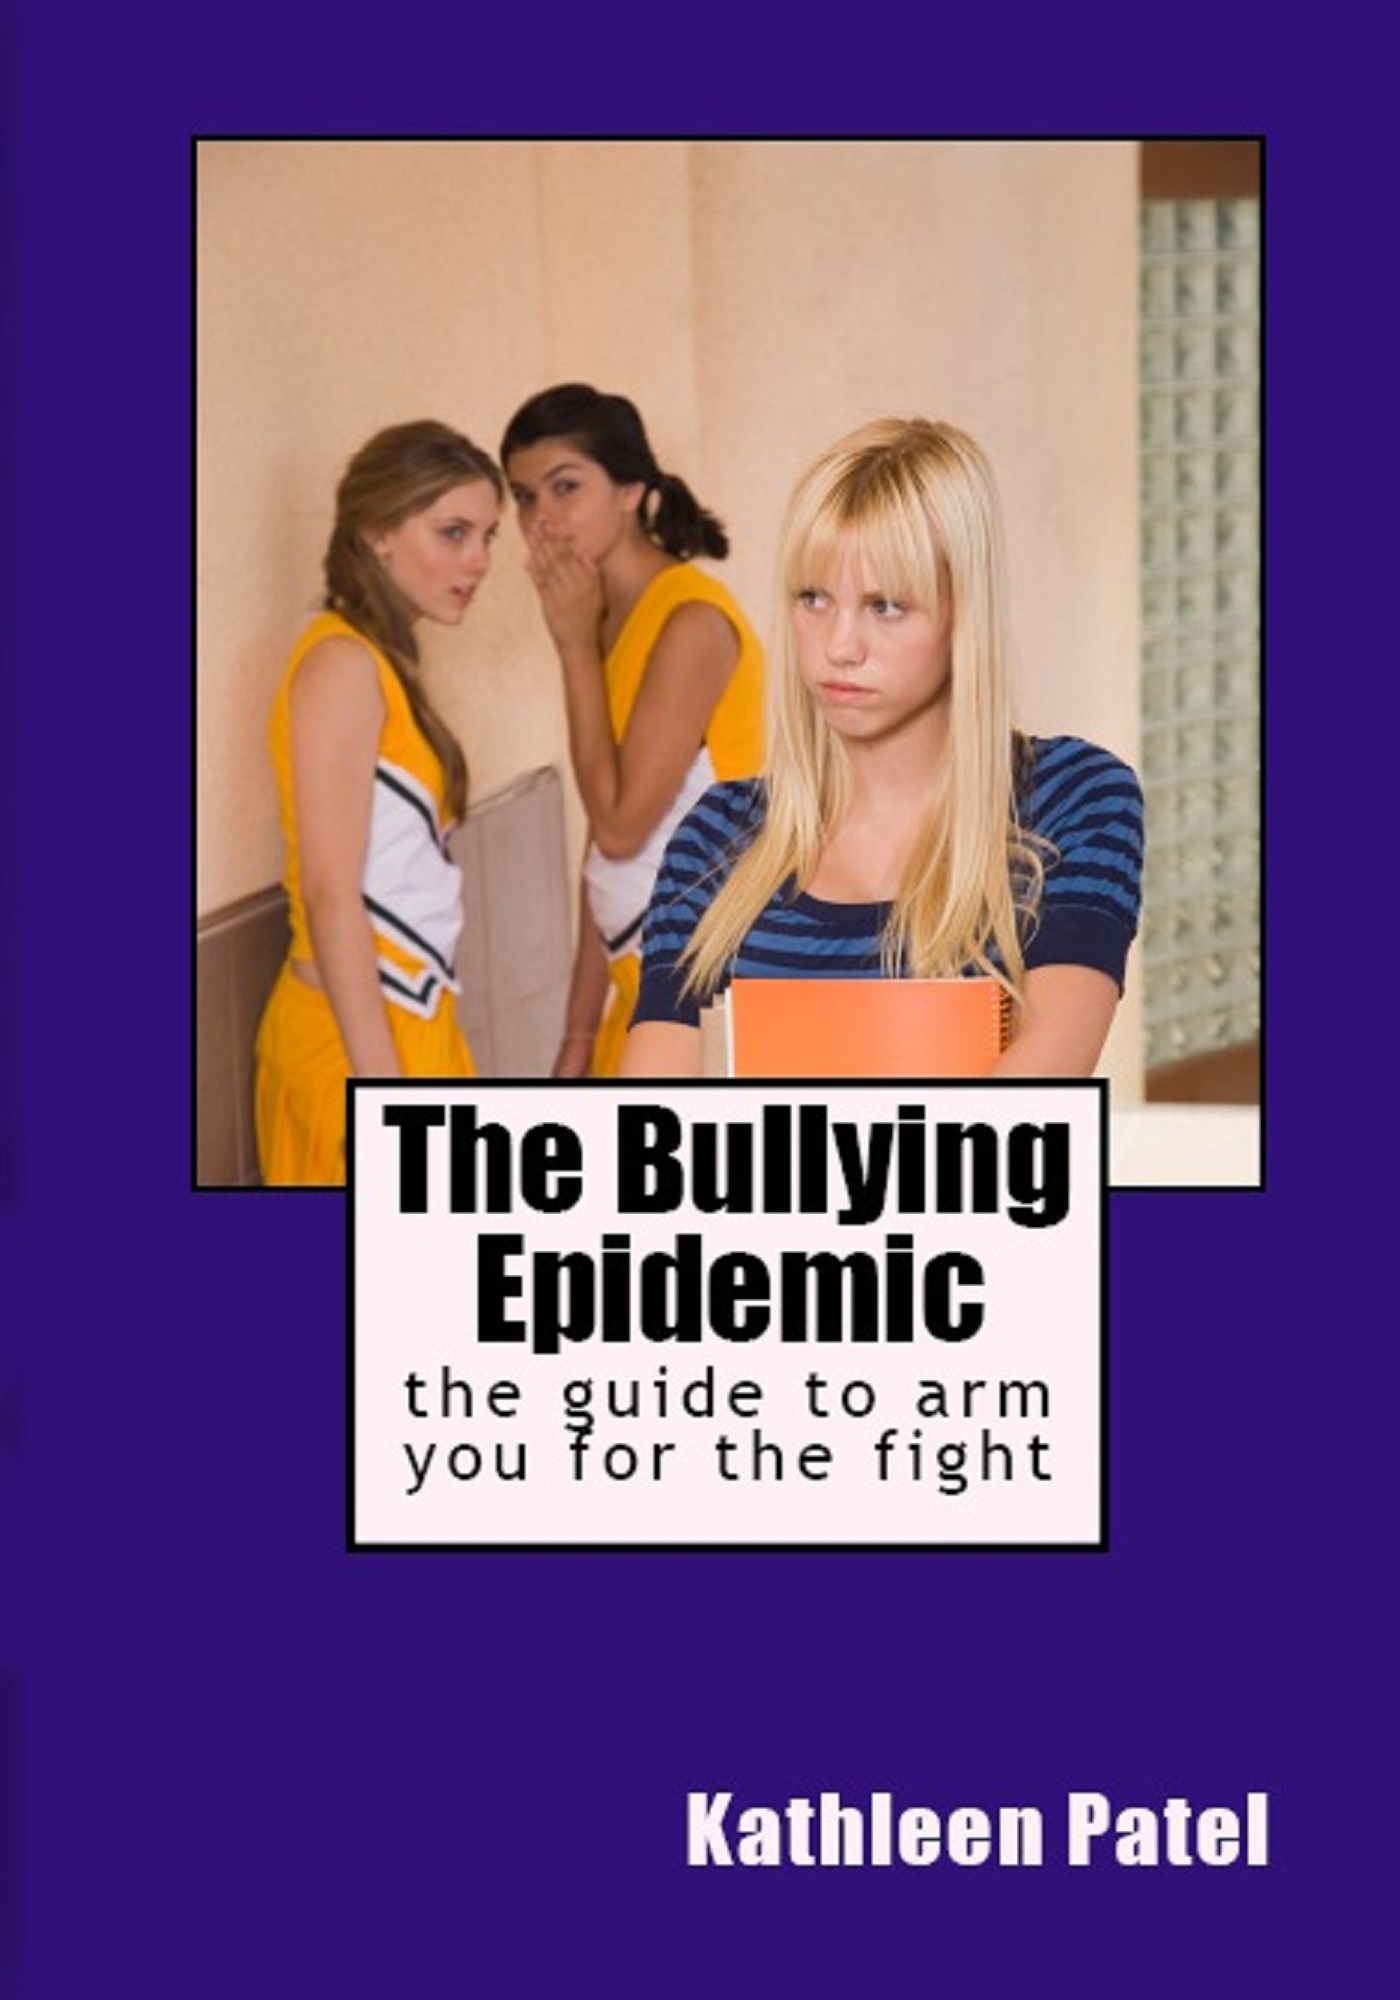 the bullying epidemic the story of